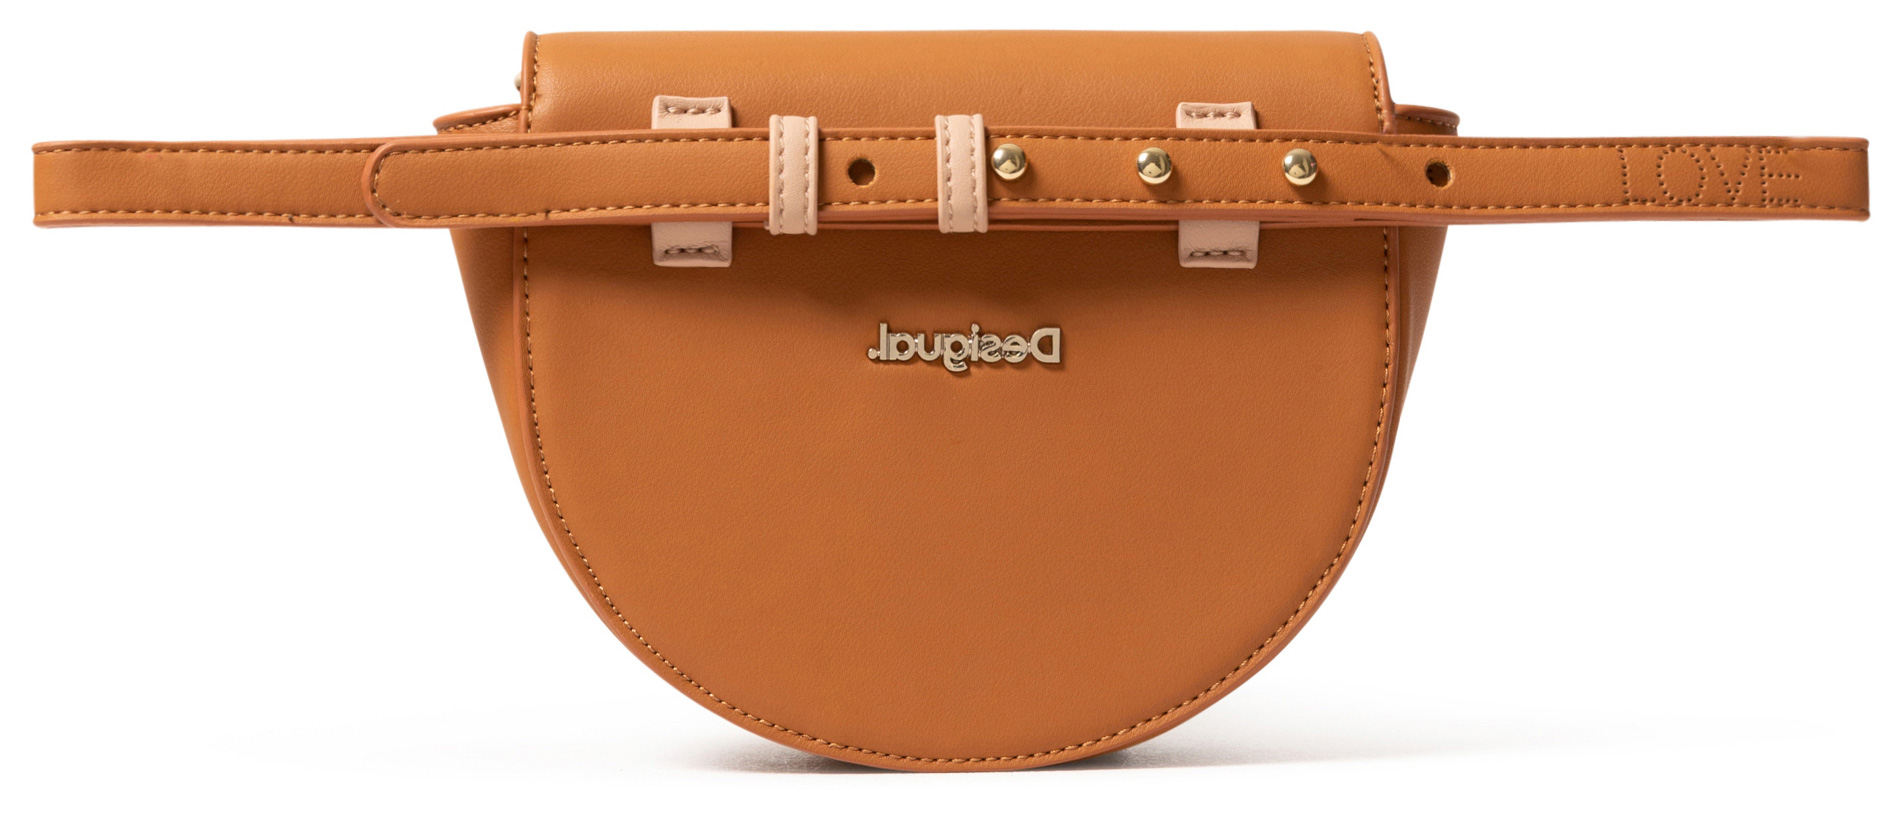 Desigual Beige-and-Brown 2in1 Bum Bag Rhapsody Nyon